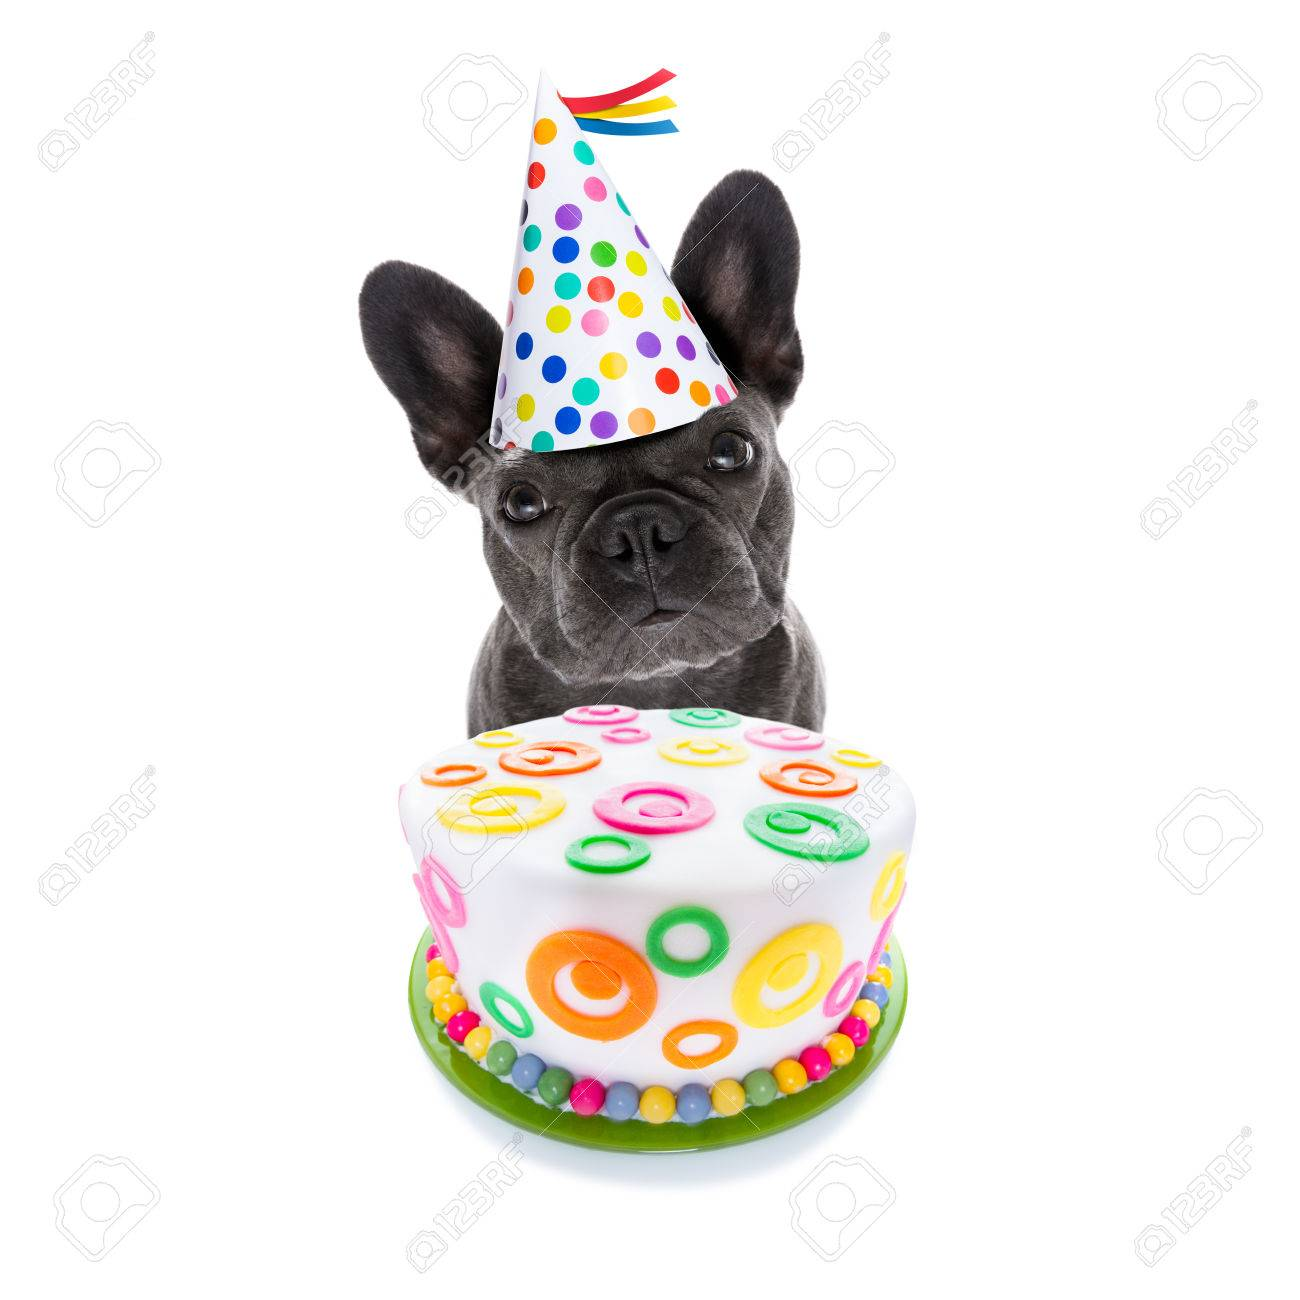 French Bulldog Dog Hungry For A Happy Birthday Cake Wearing Party Hat Isolated On